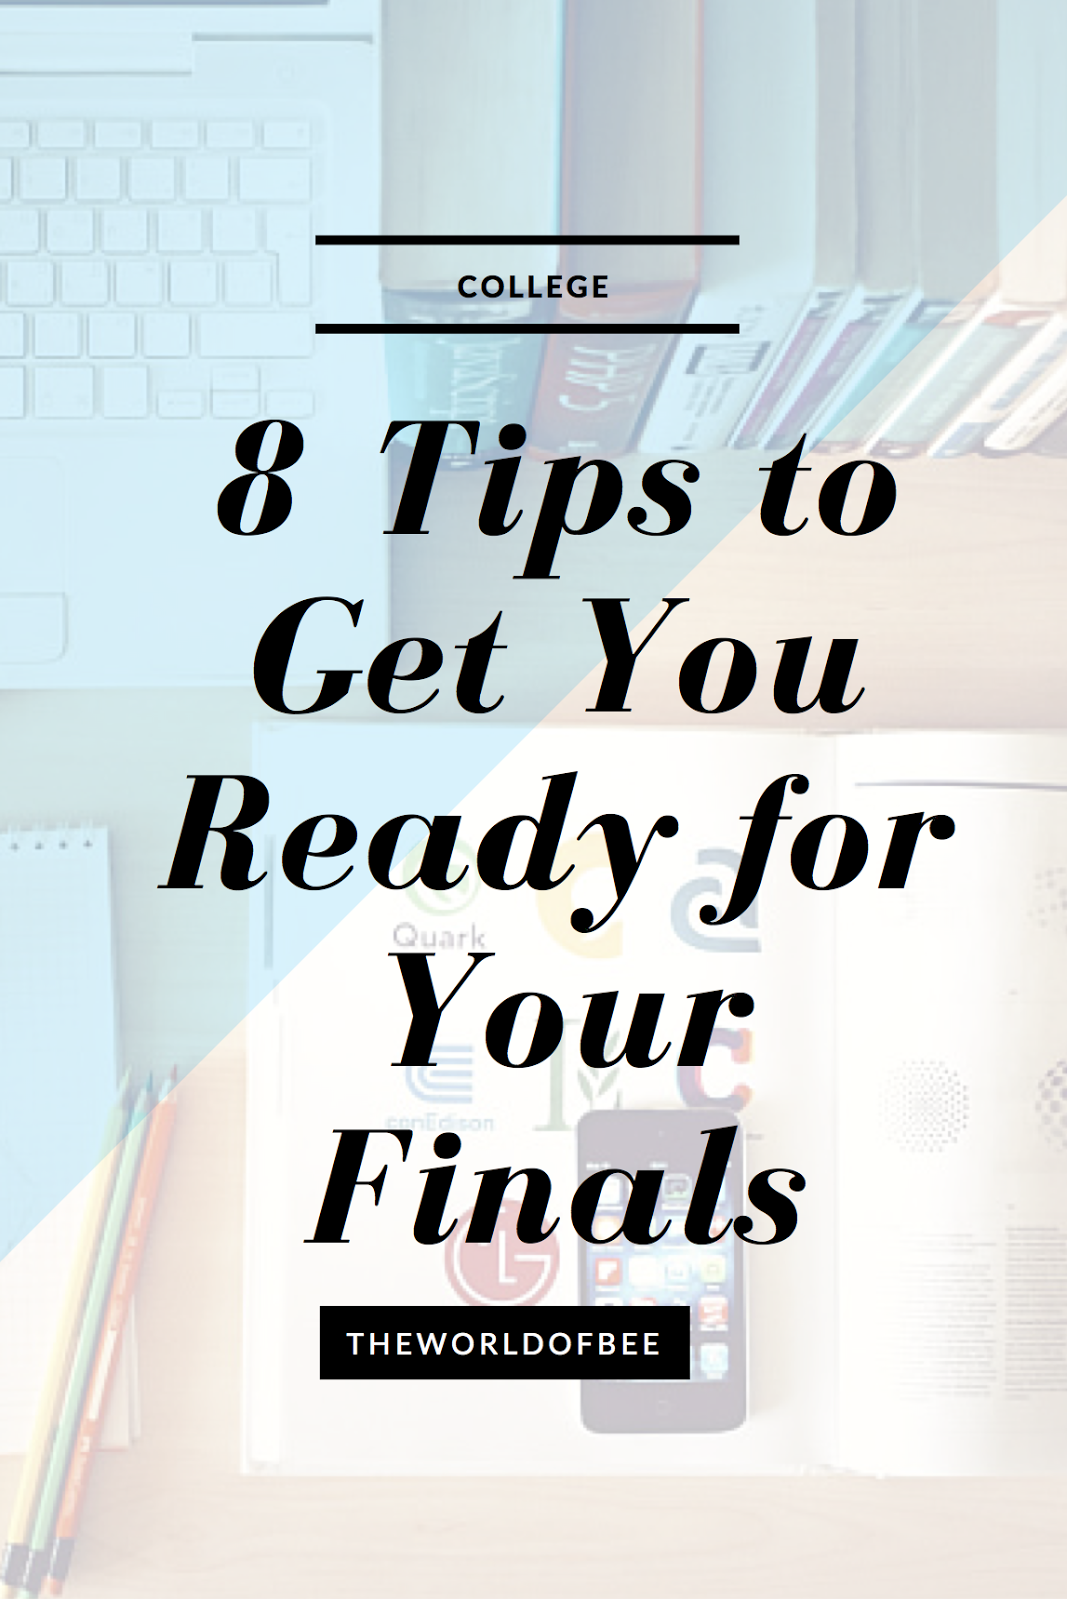 8 Tips to Get You Ready for Your Finals